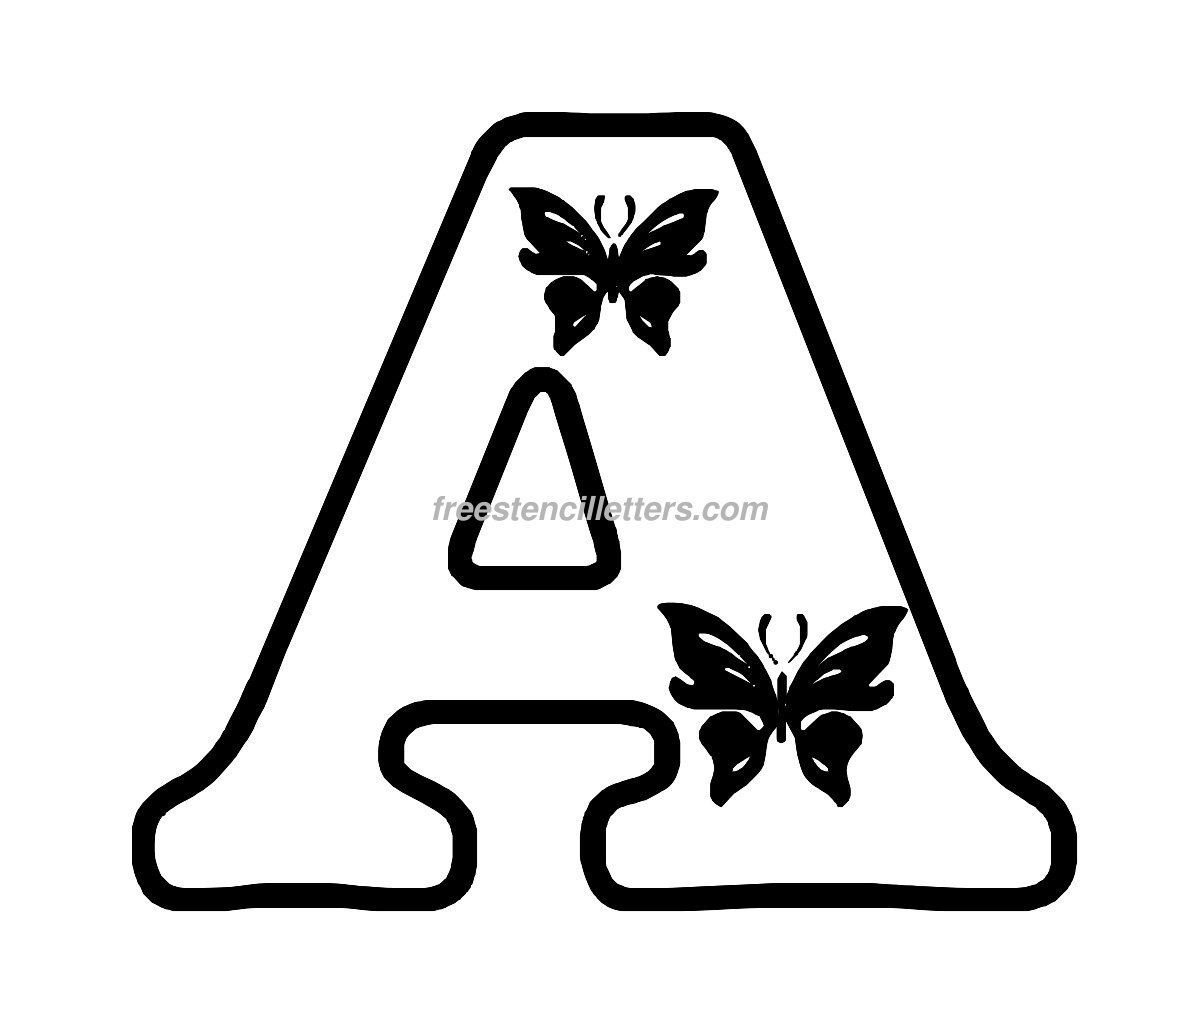 Free Butterfly Stencils To Print | Print A Letter Stencil | A - Free Printable Alphabet Stencils To Cut Out